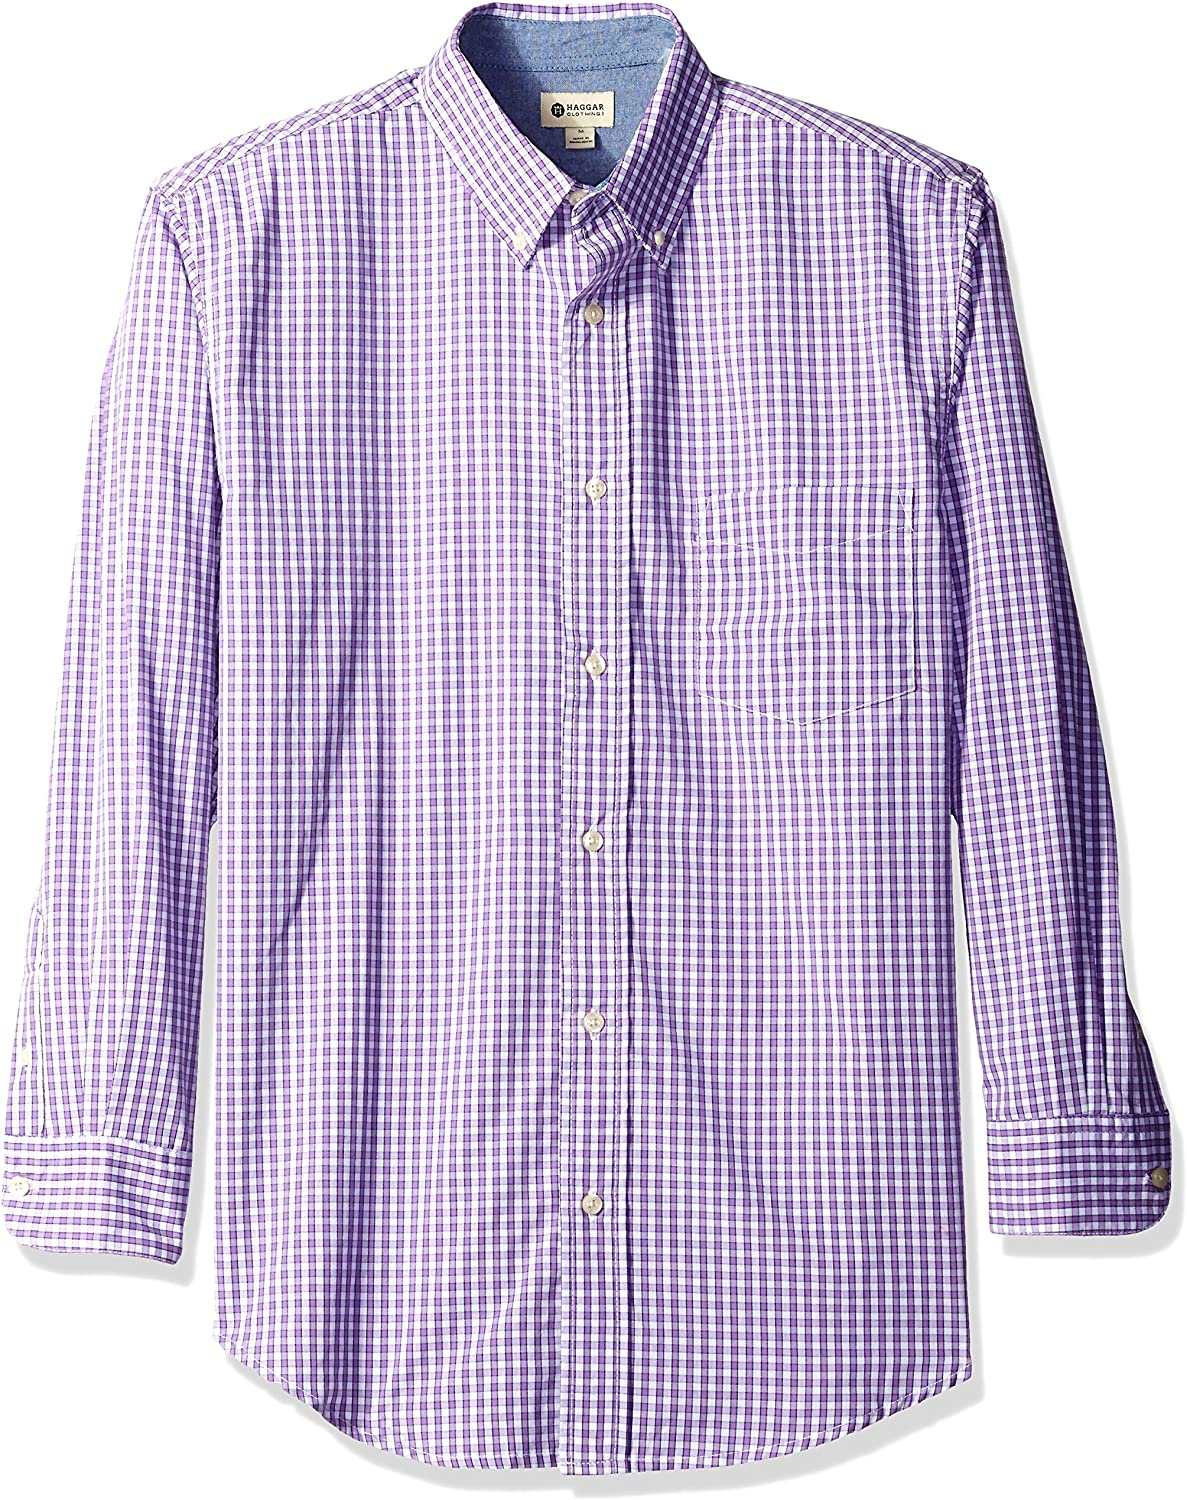 Haggar Mens Long Sleeve Peached Poplin Woven Shirt